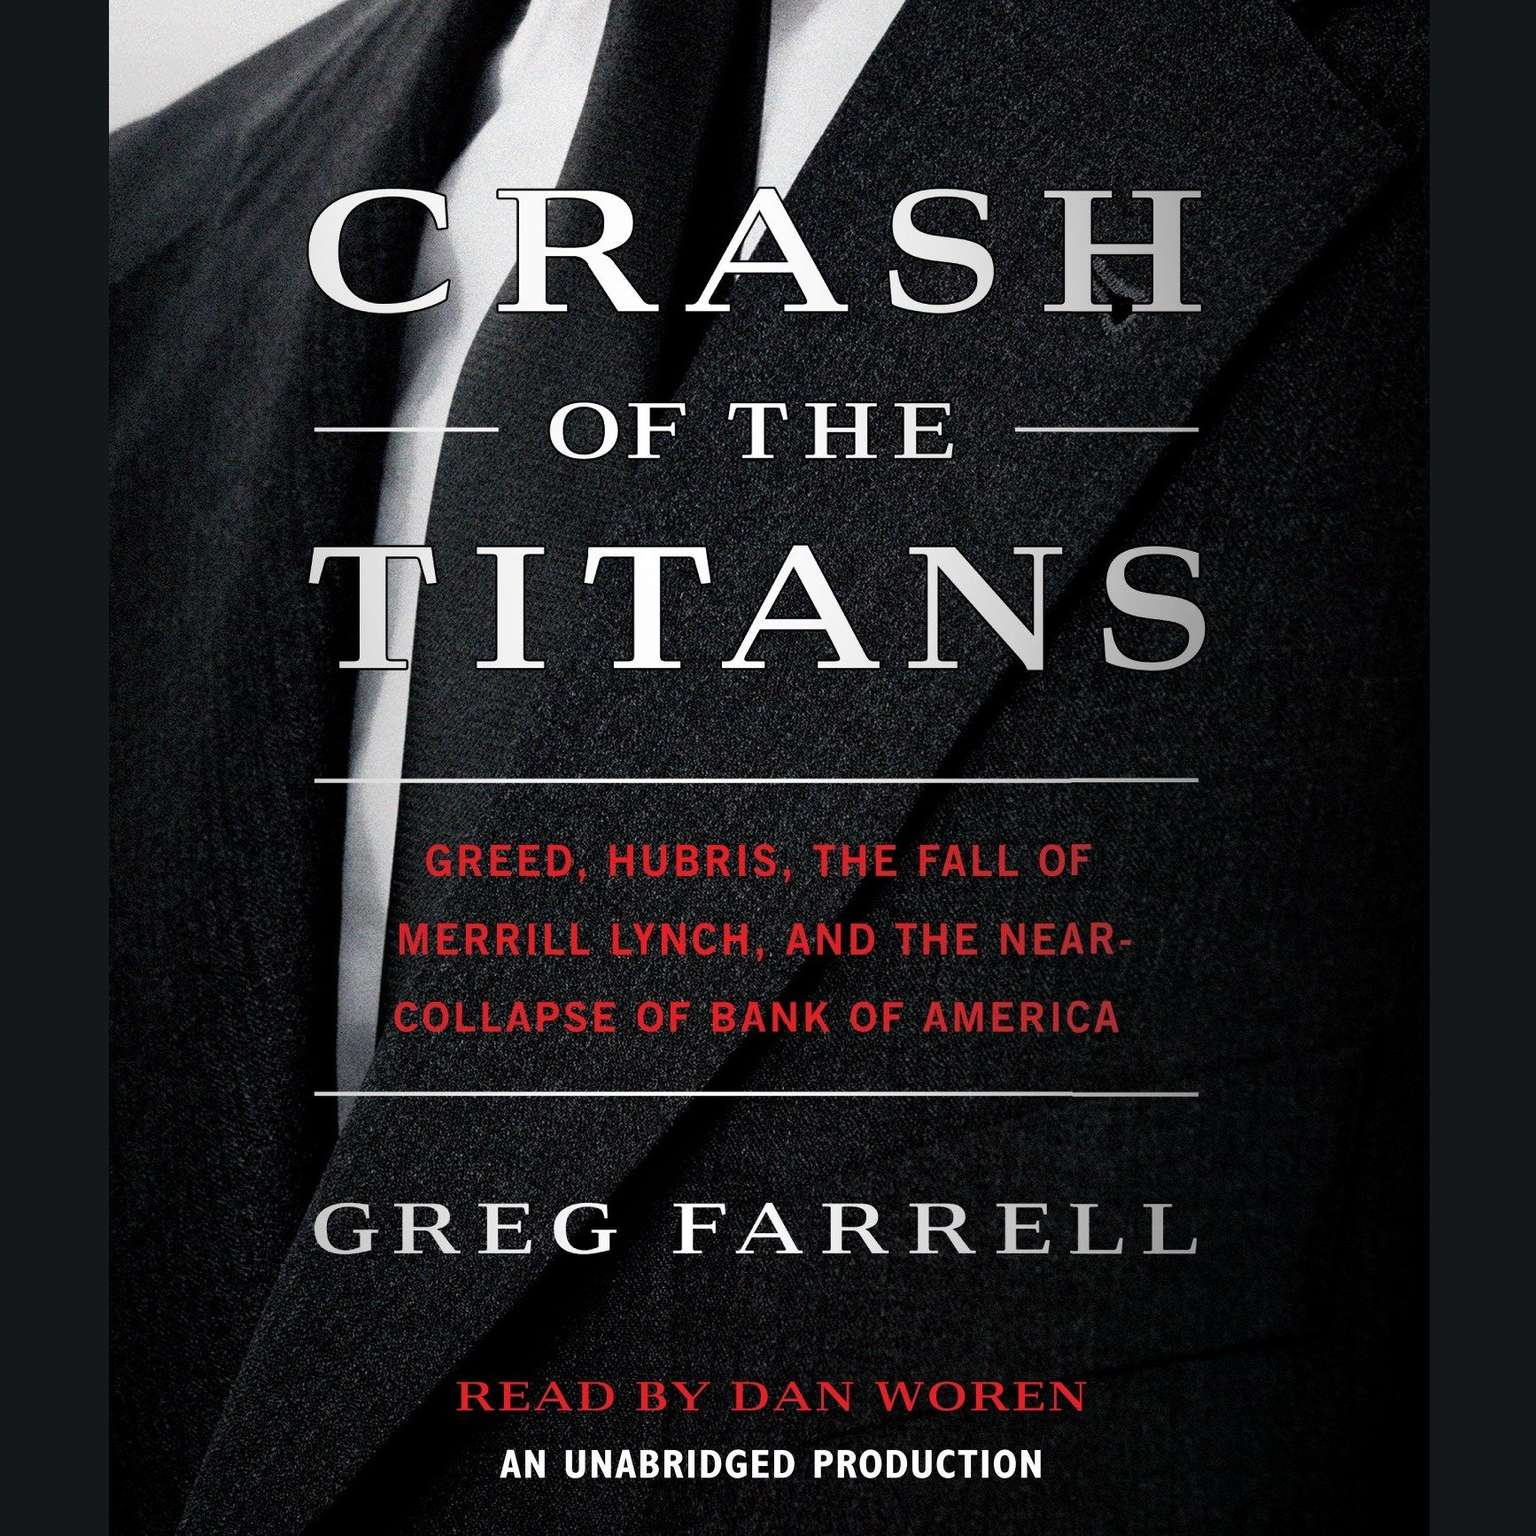 Printable Crash of the Titans: Greed, Hubris, the Fall of Merrill Lynch and the Near-Collapse of Bank of America Audiobook Cover Art